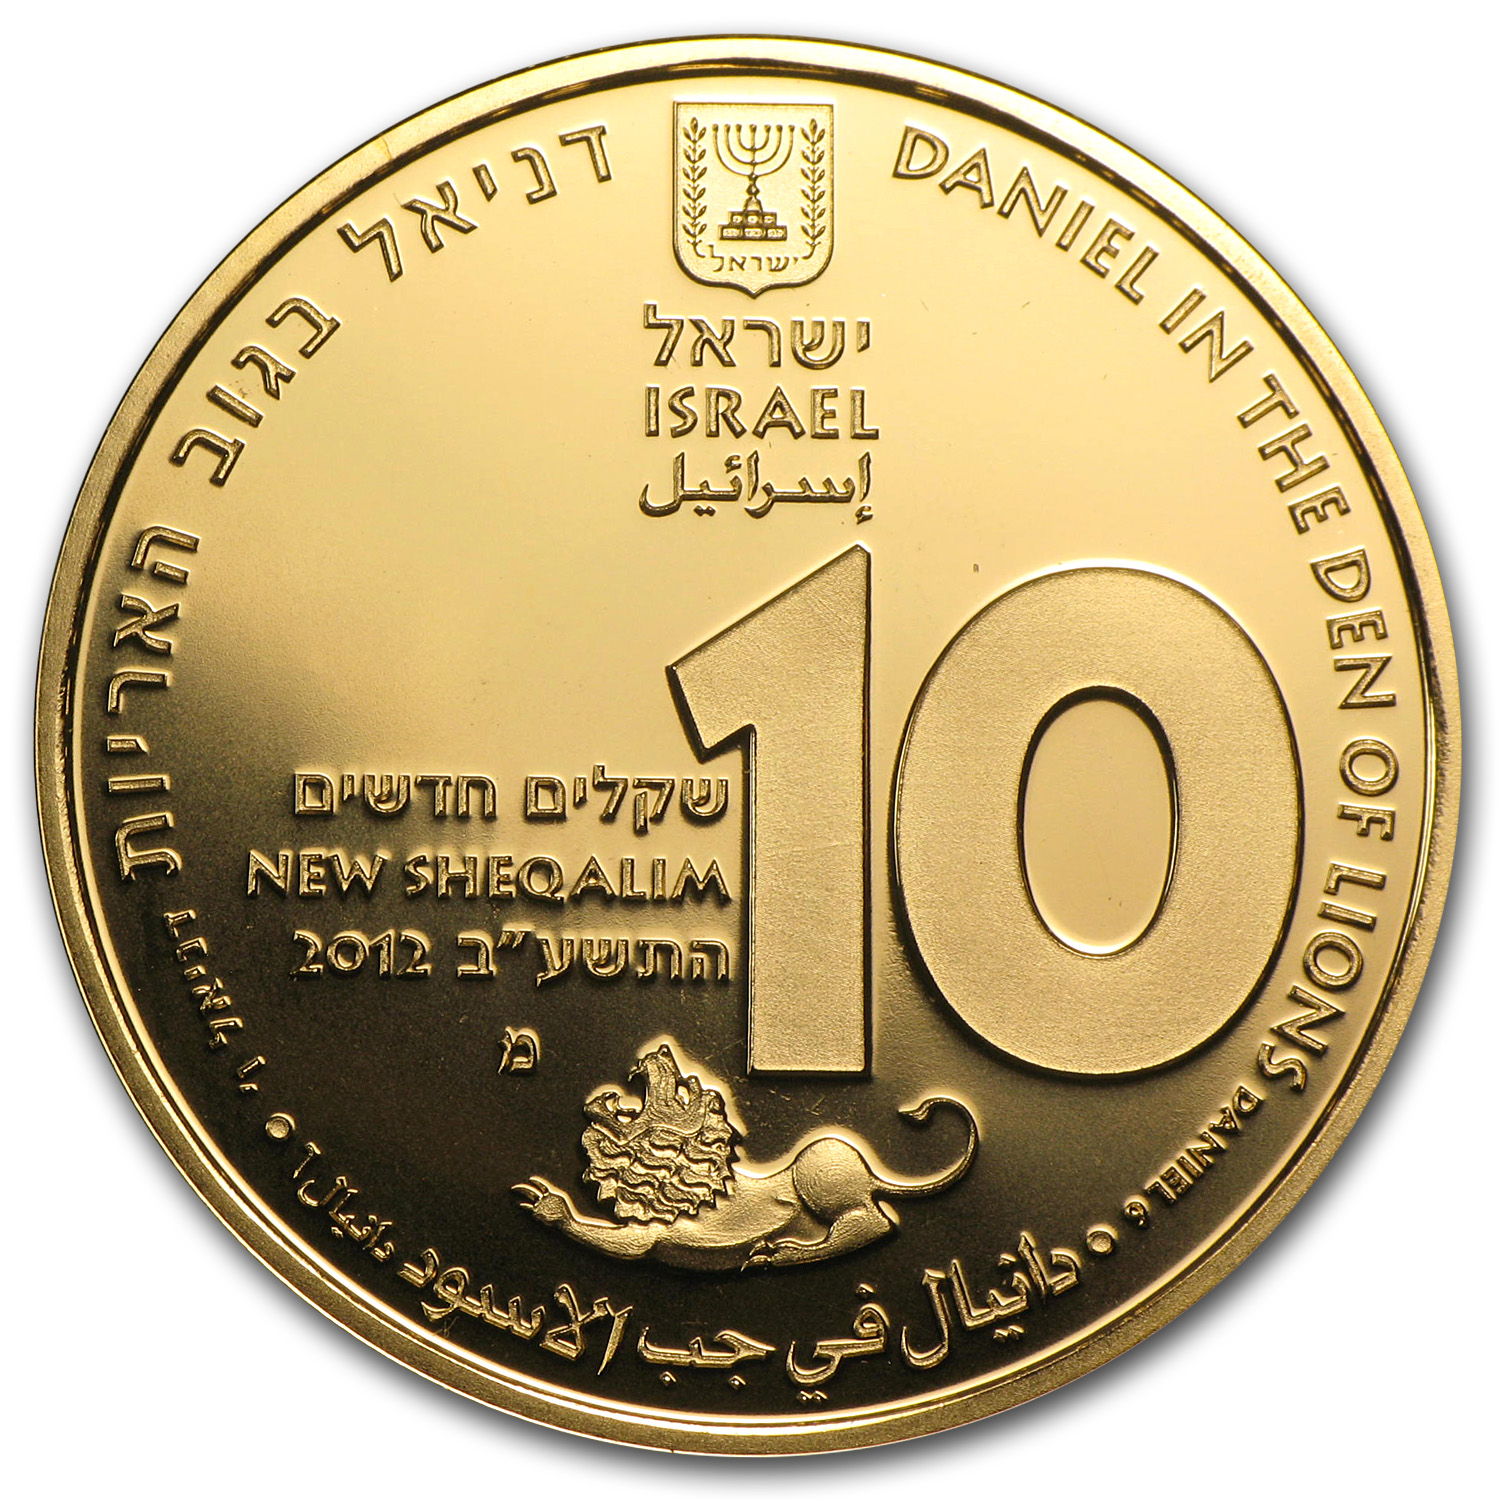 2010-2012 Israel 3-Coin 1/2 oz Gold Proof Set